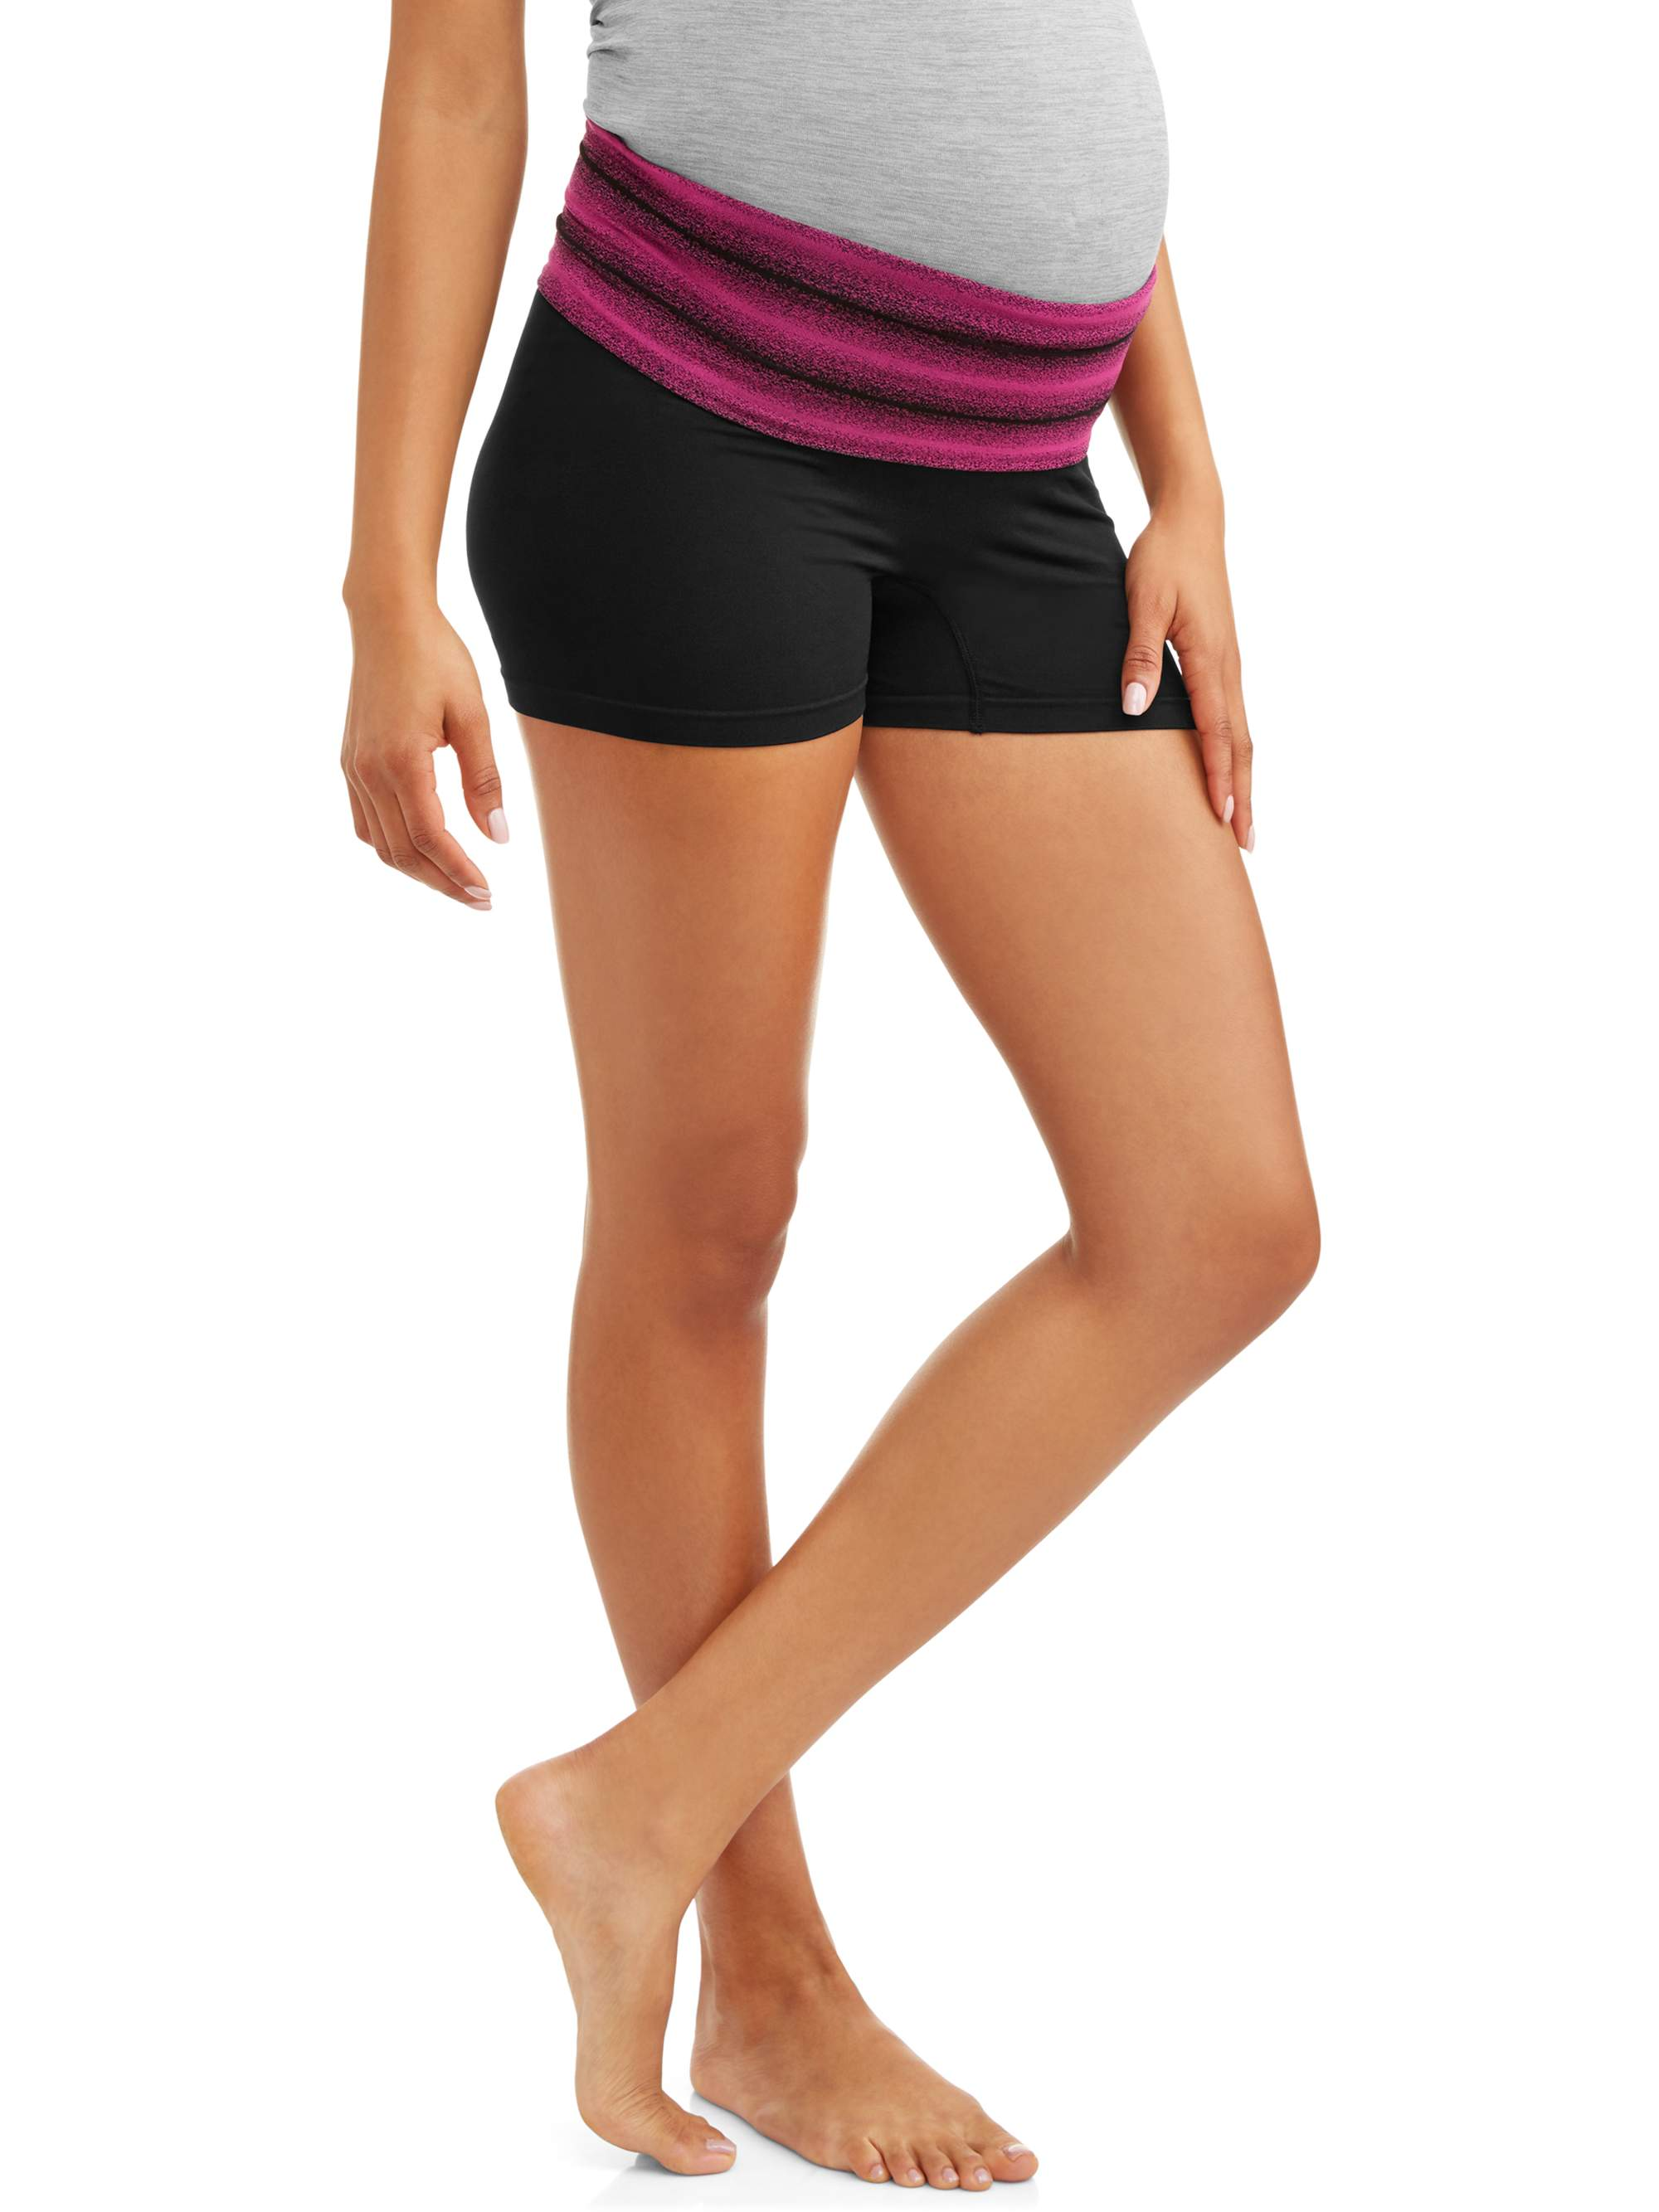 Dynabelly Maternity Seamless Yoga Activewear Over Or Under Belly Short by Dynashape